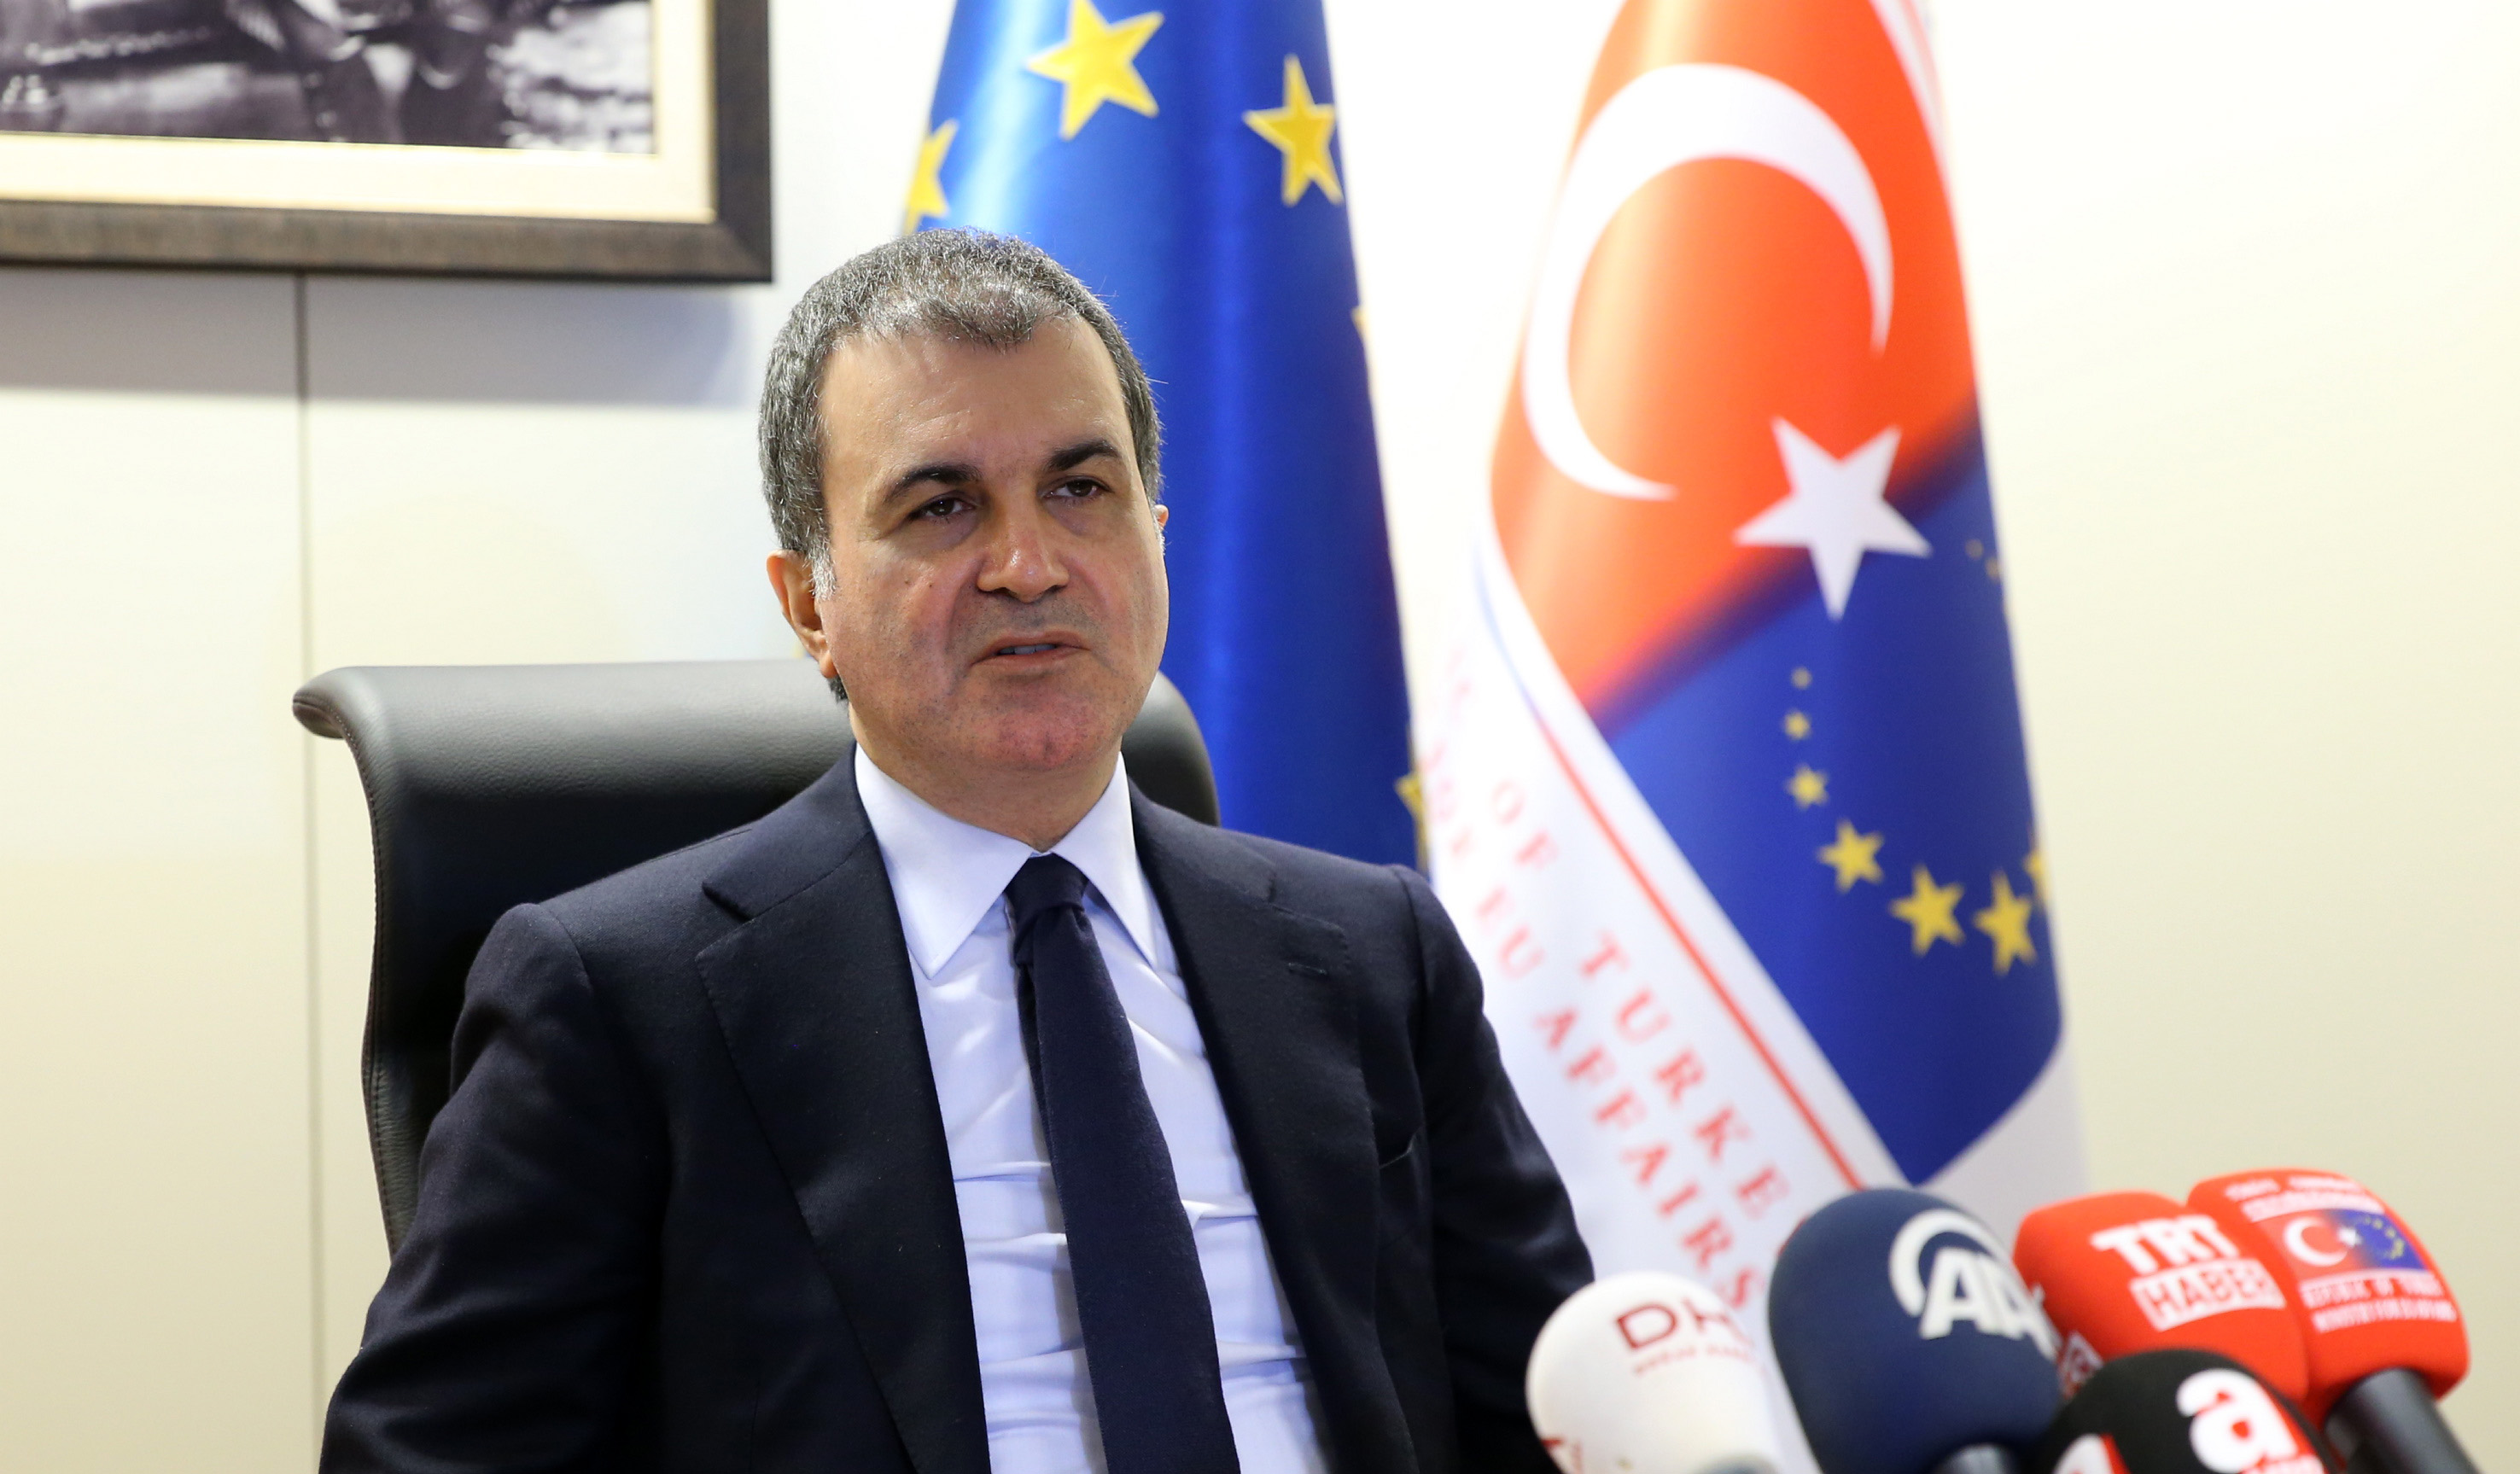 Lifting of EU funding has no meaning Turkey, says EU minister